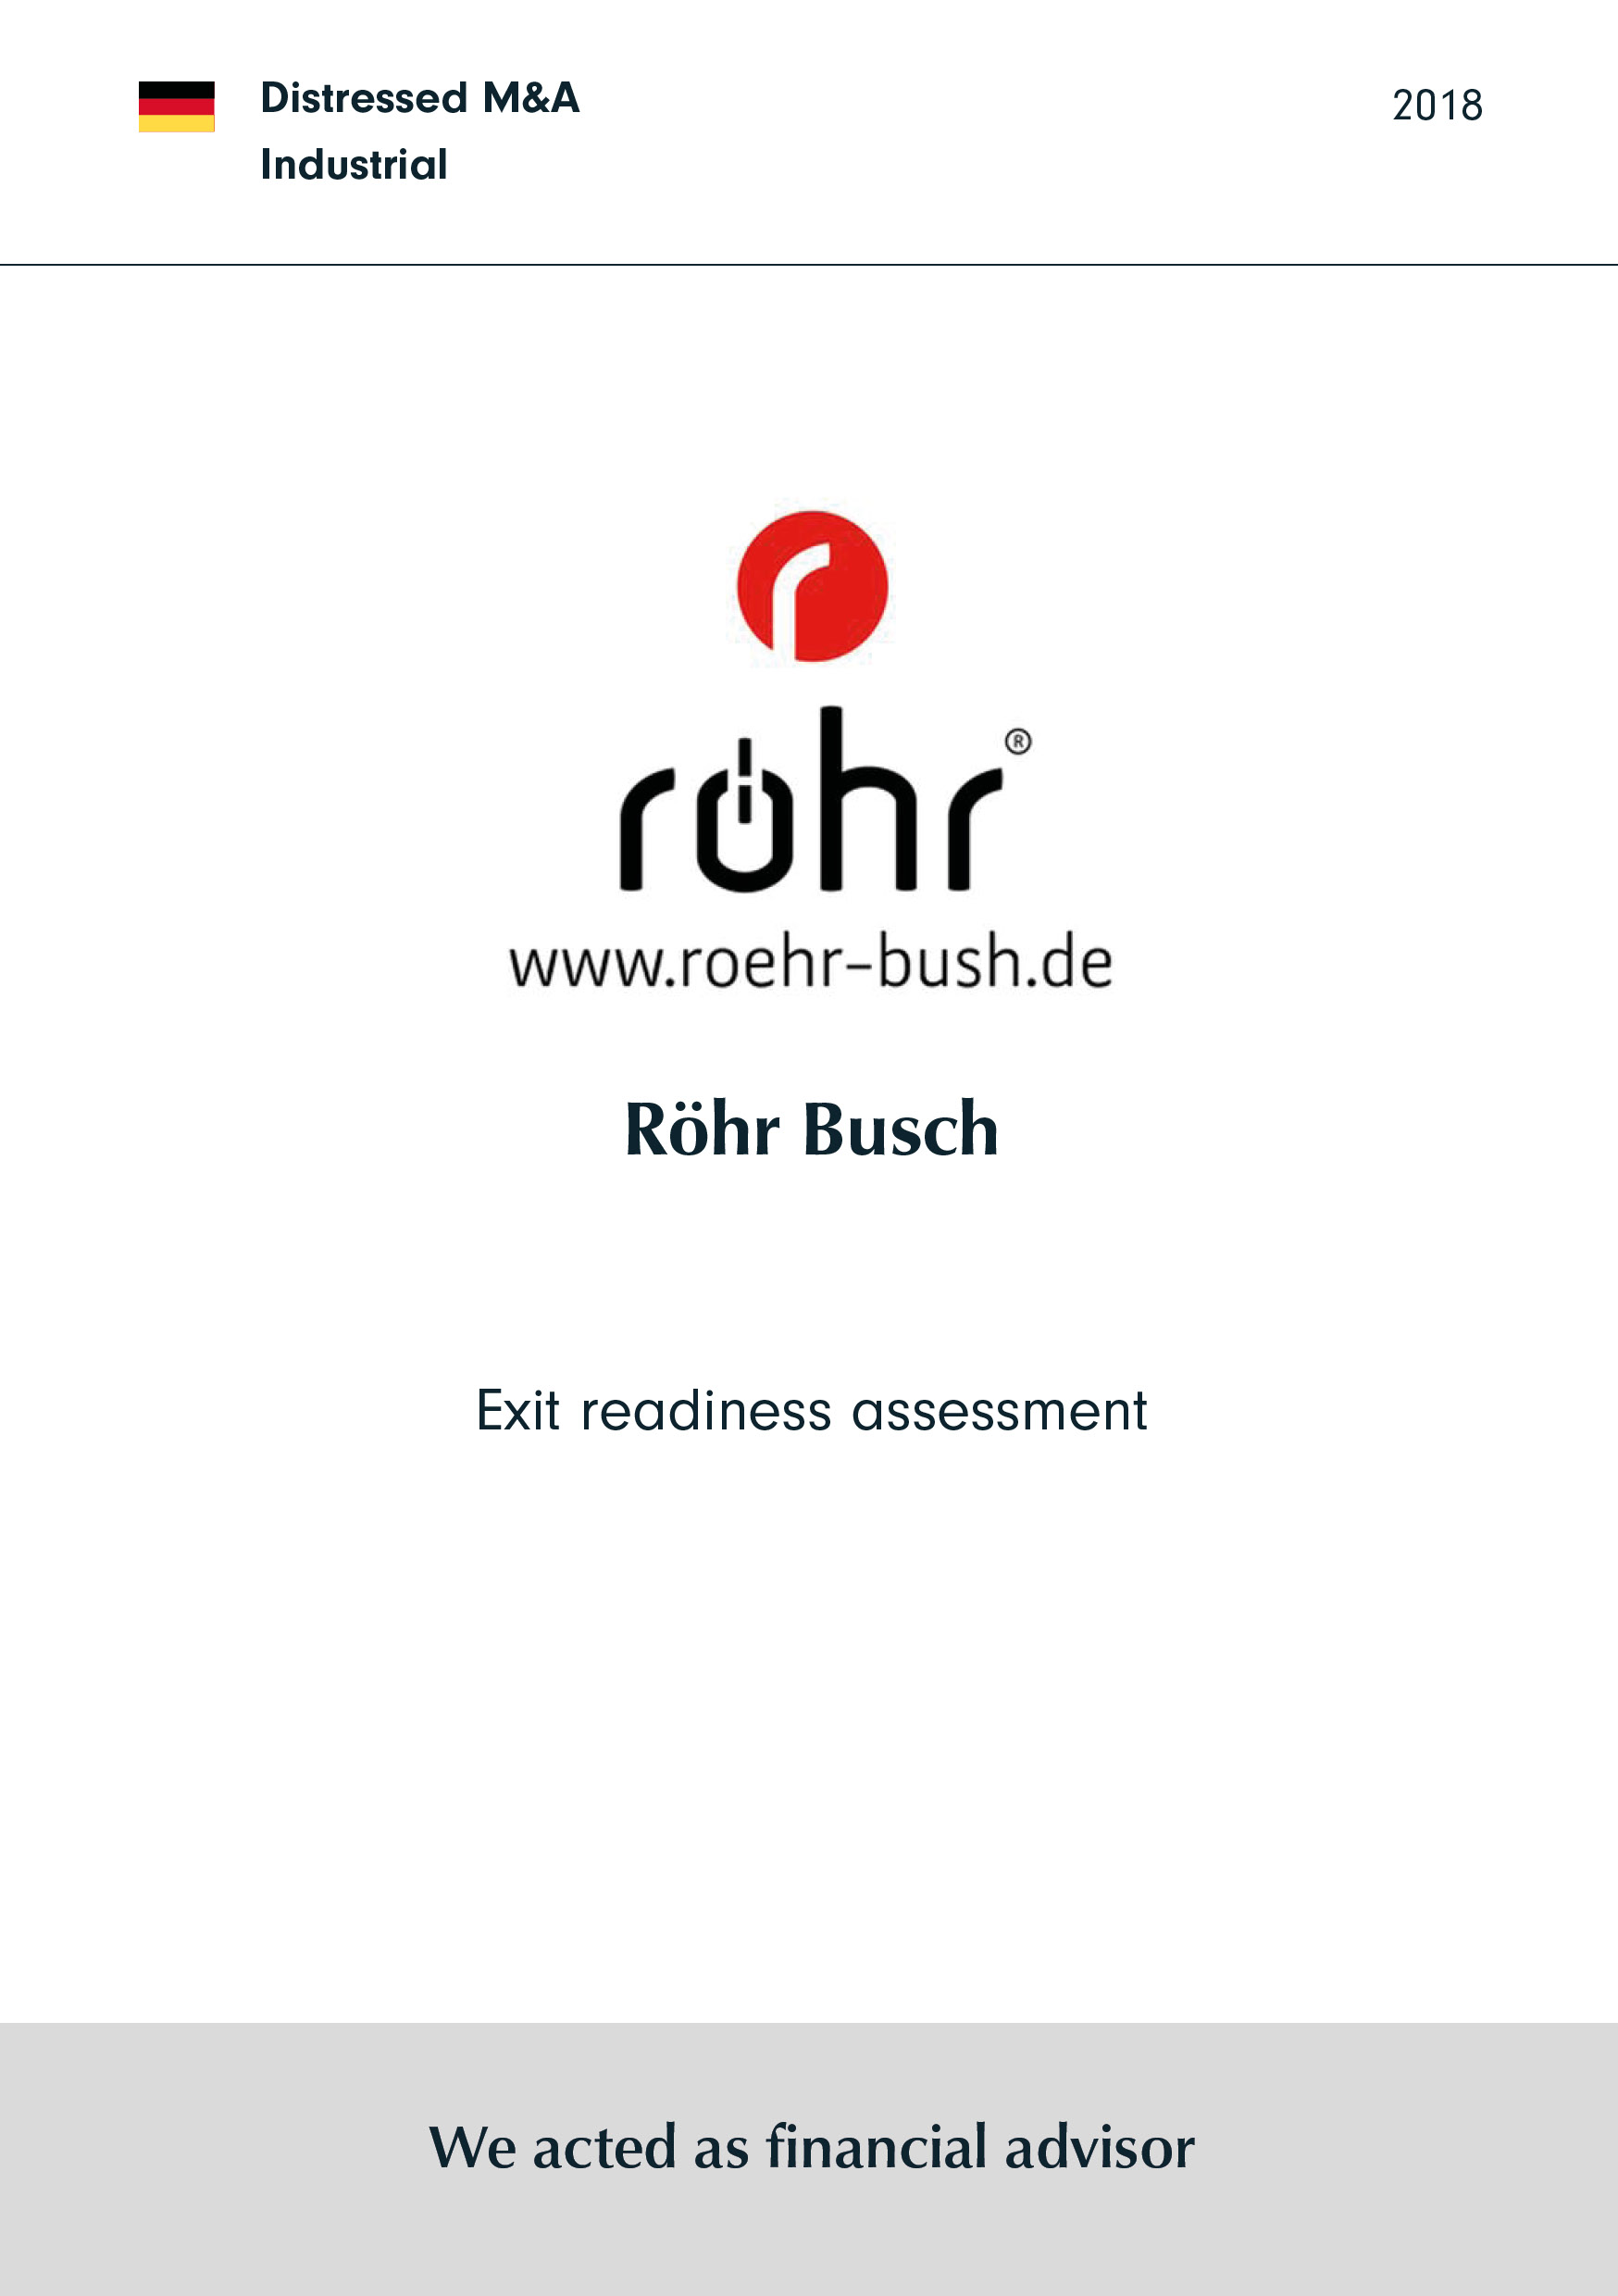 Röhr-Bush | Exit readiness assessment